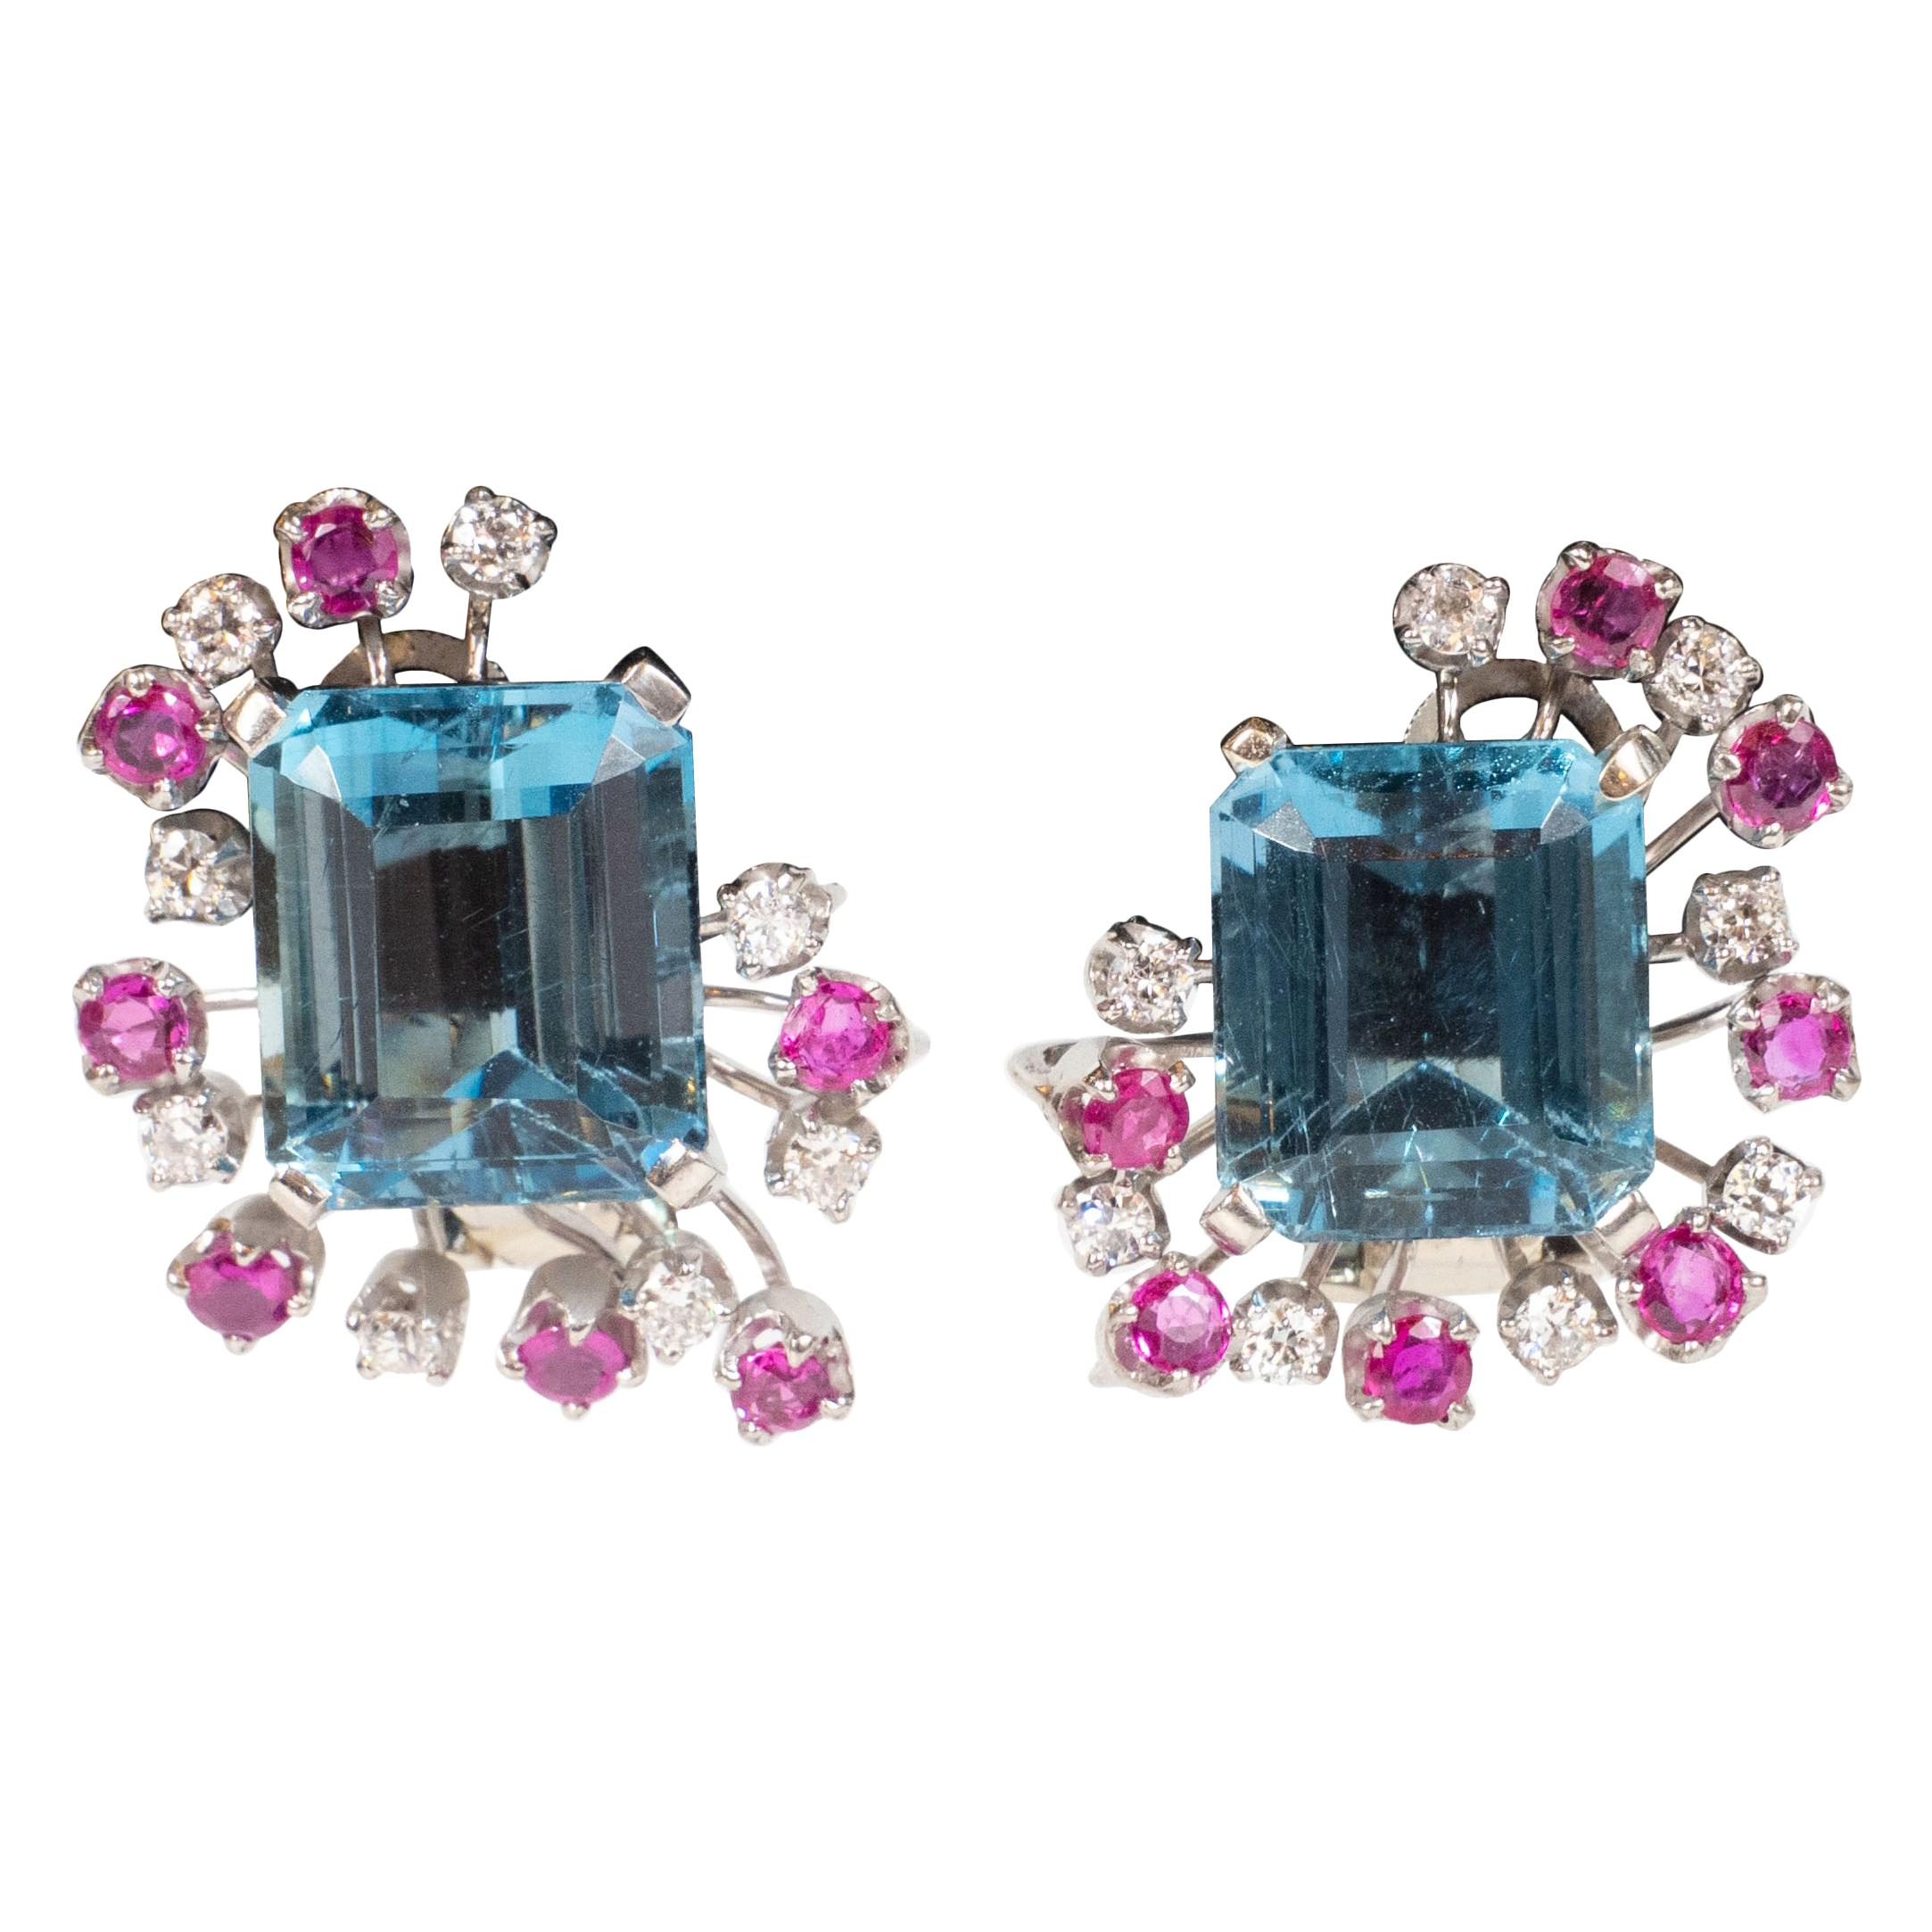 1940s 12 Carat Aquamarine and 14K White Gold Earrings with Diamonds and Rubies